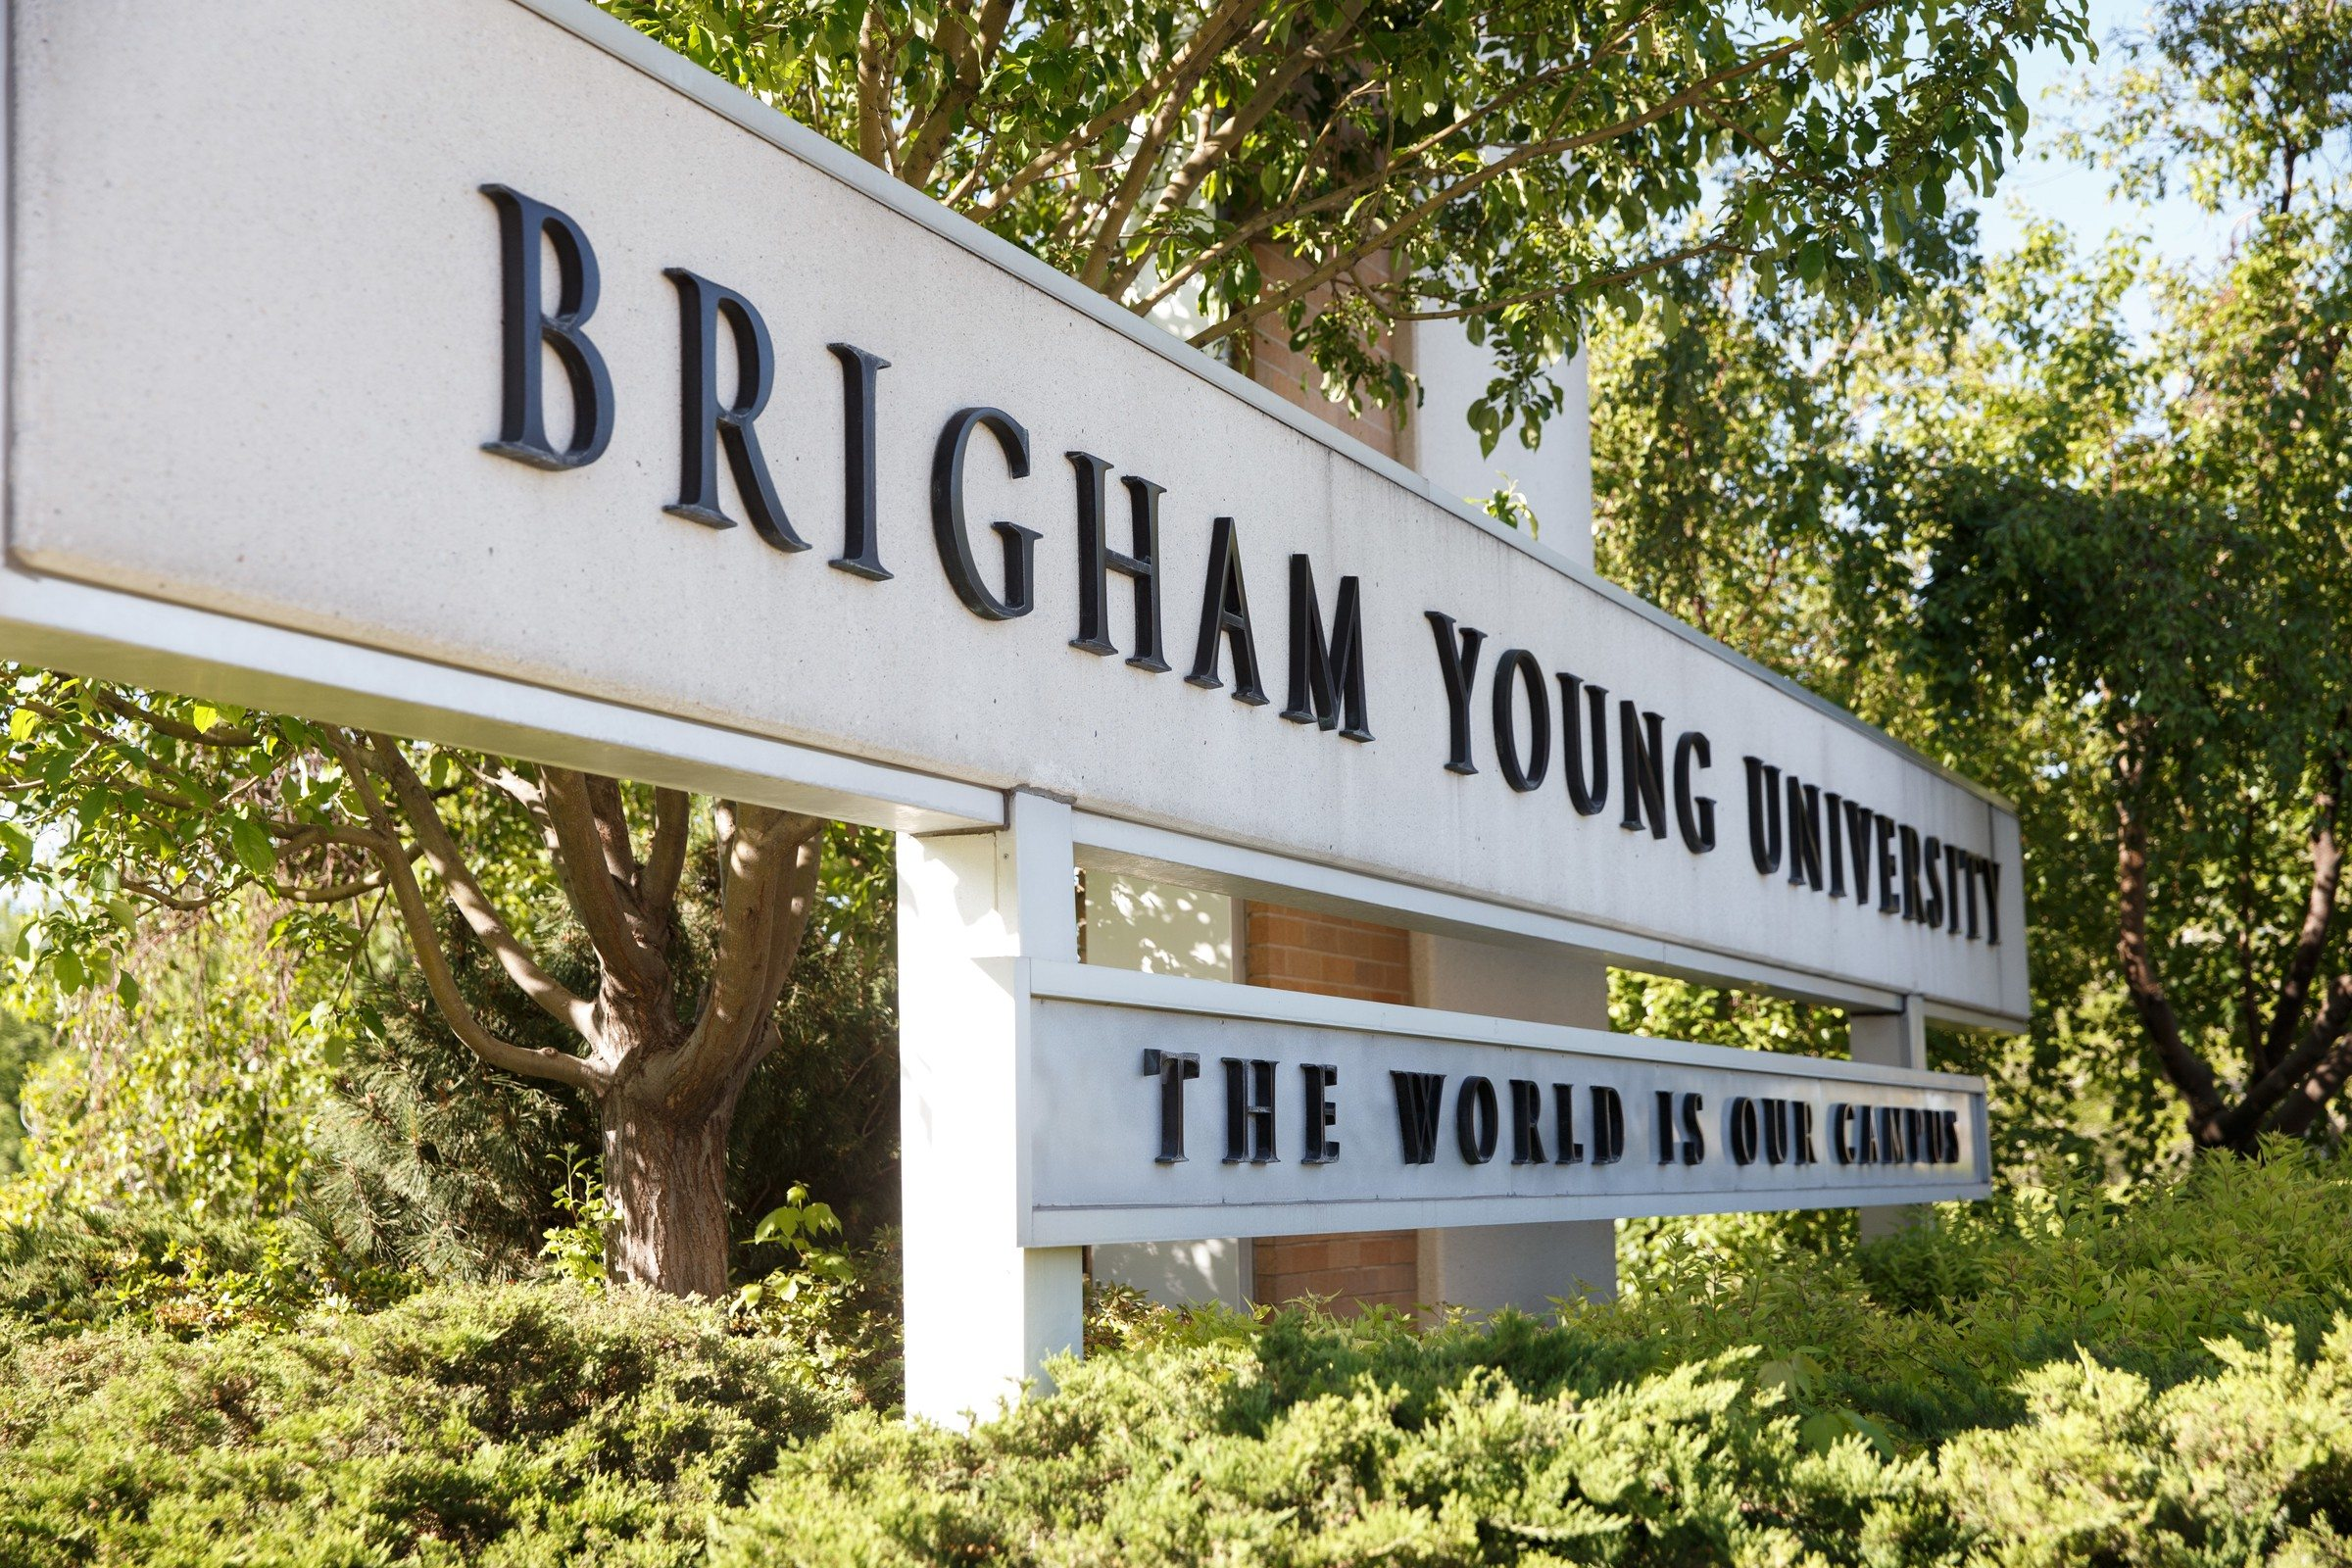 brigham young wiki